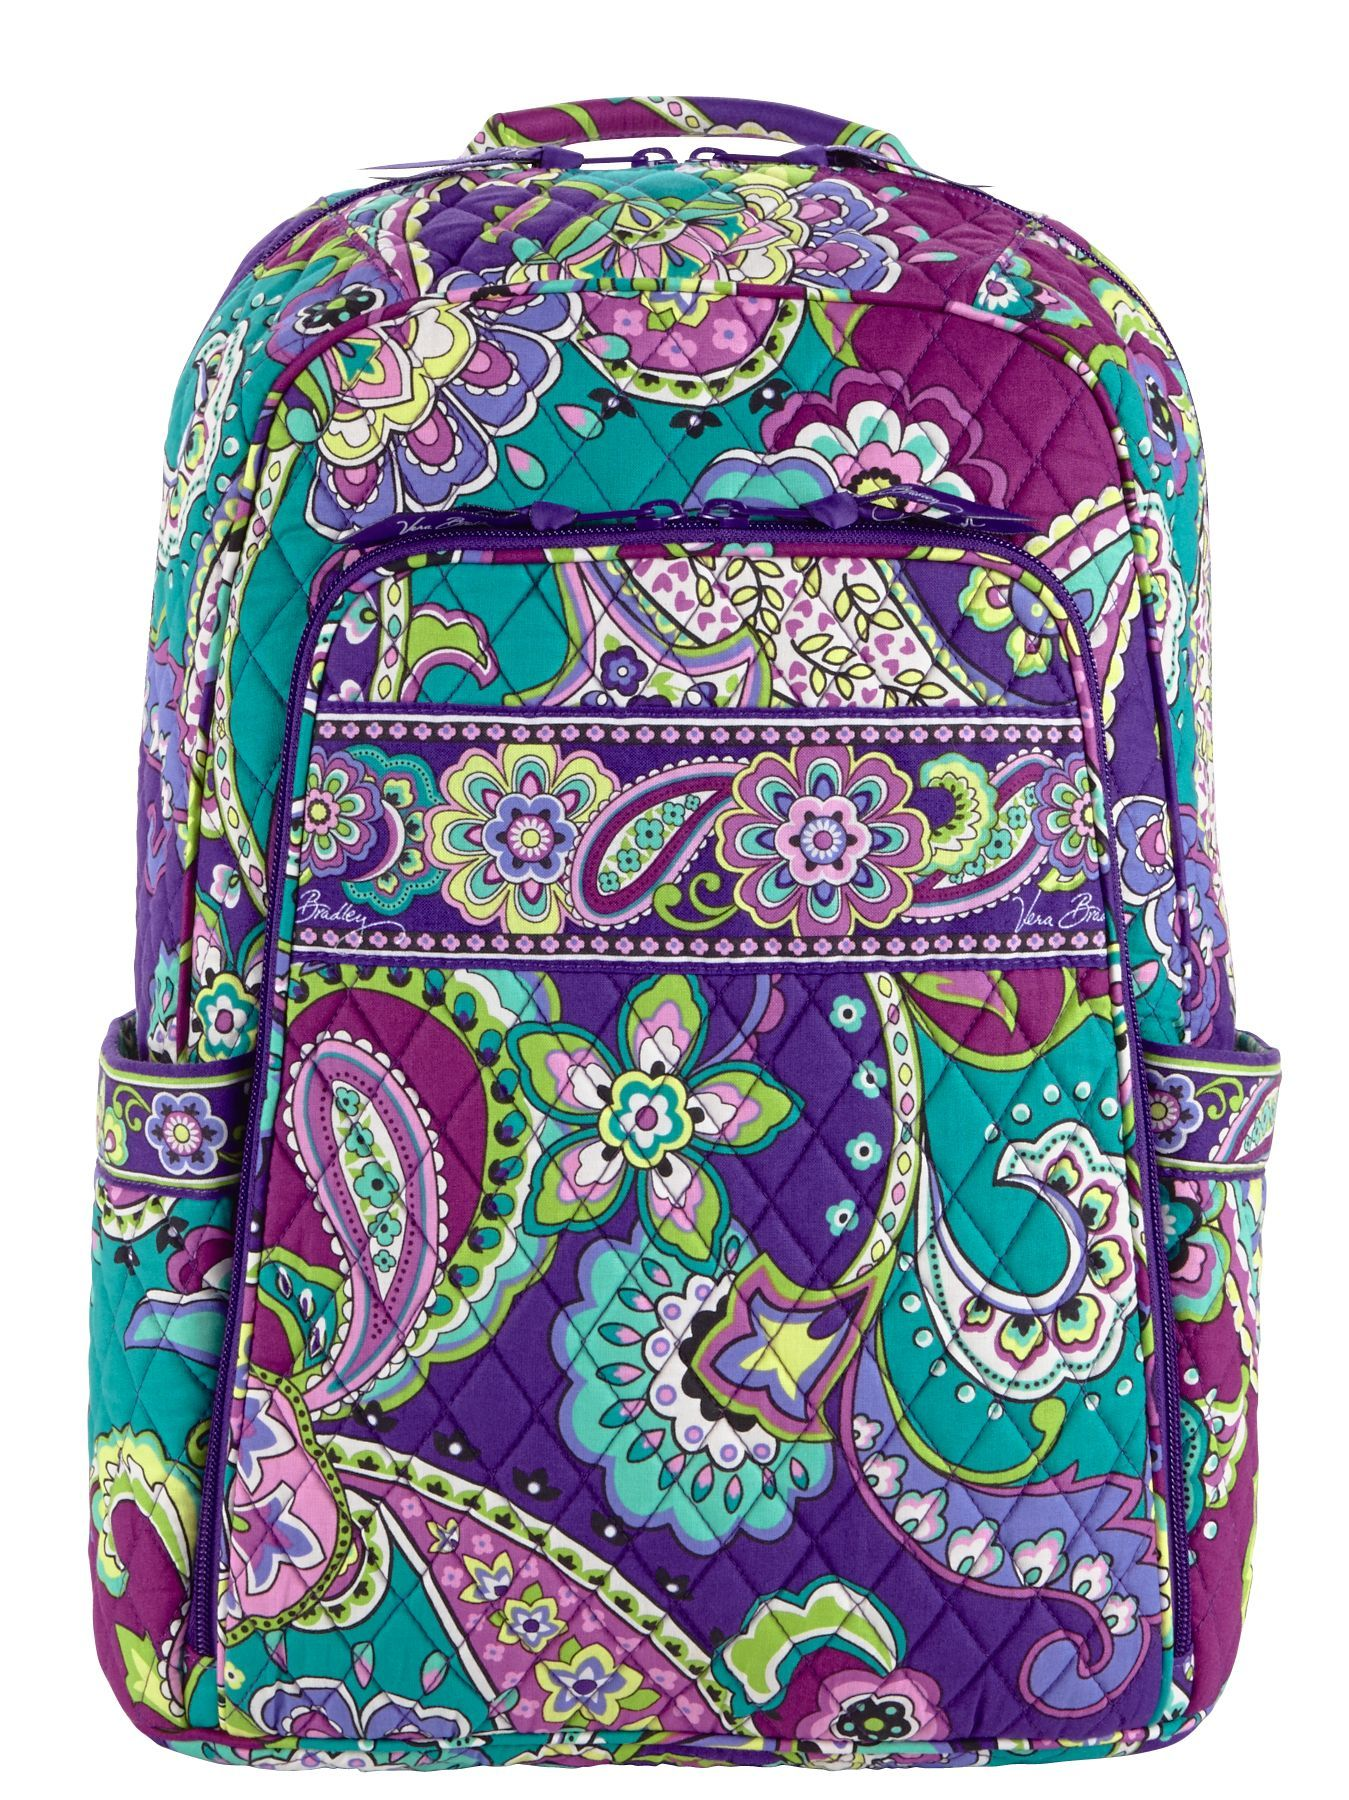 e49944d1645 Vera Bradley Laptop Backpack in Heather 55   Vera Bradley ...